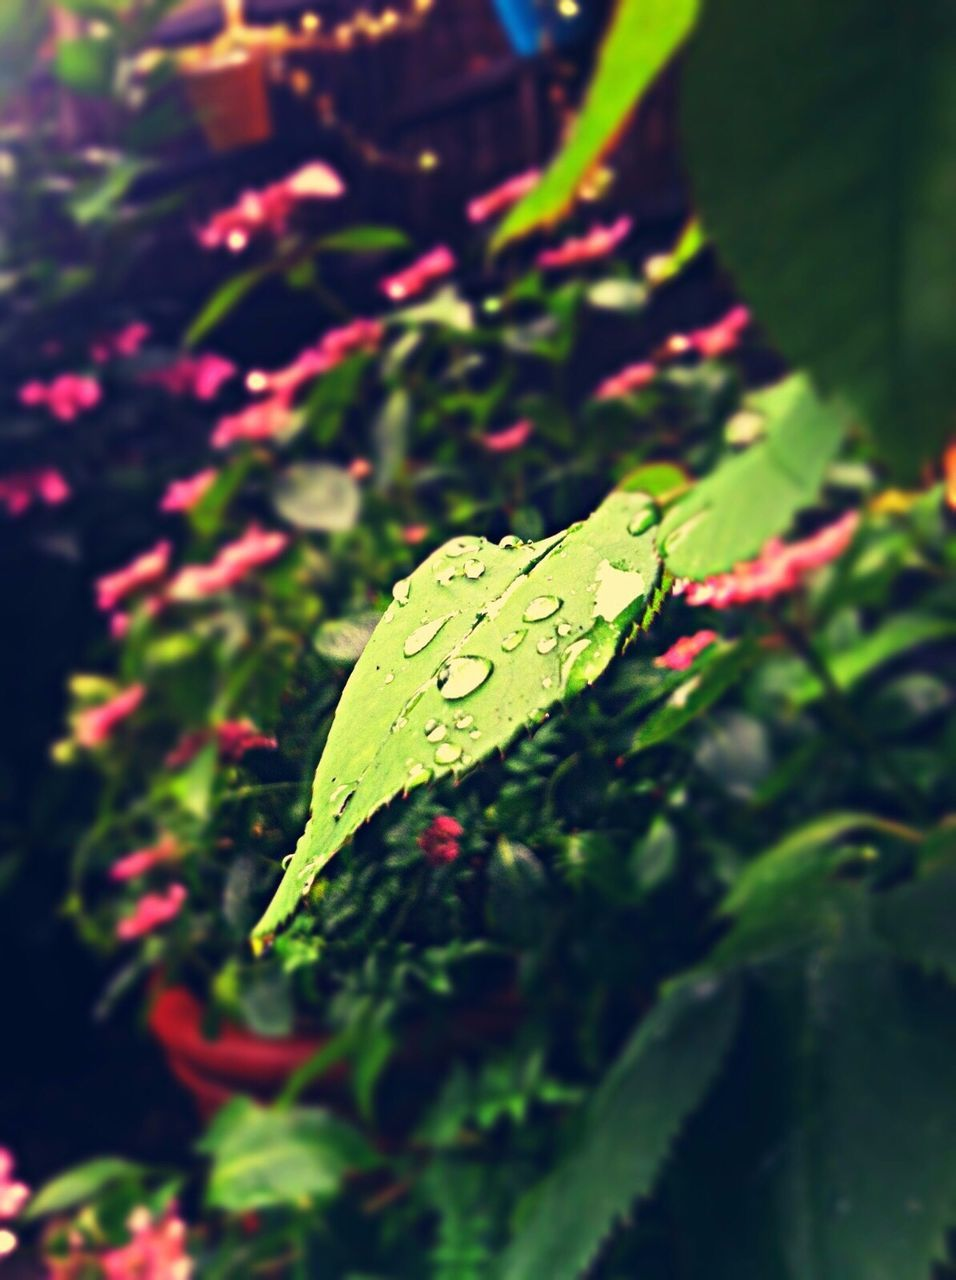 leaf, green color, change, nature, outdoors, close-up, day, autumn, no people, growth, maple